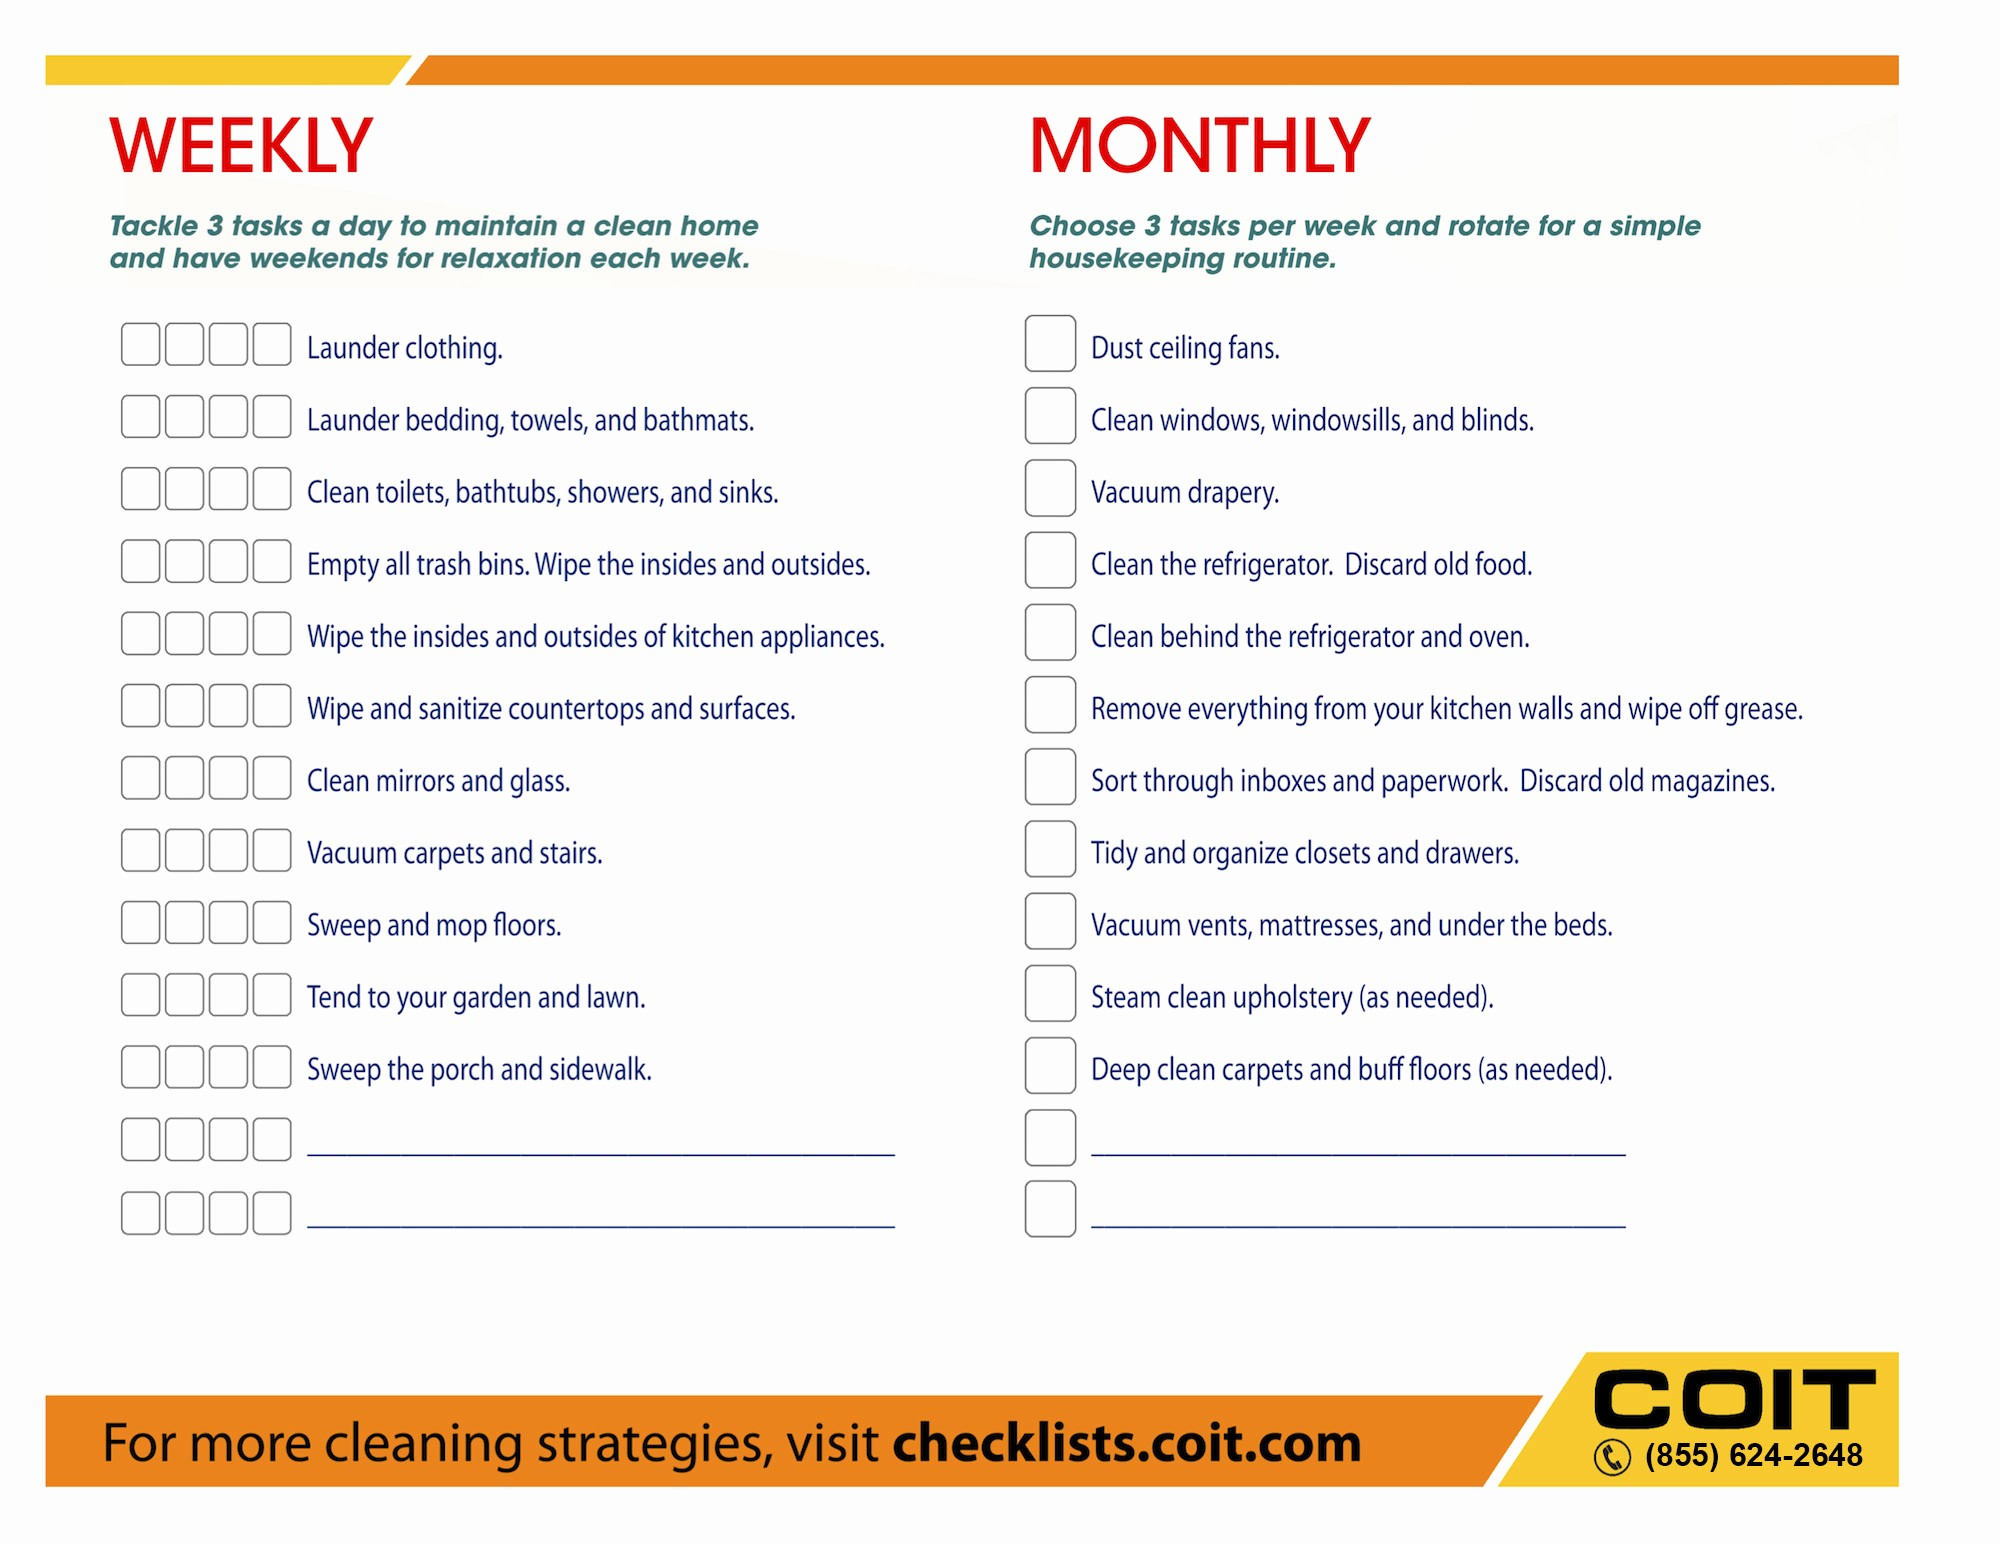 Weekly House Cleaning Schedule Template Best Of Weekly and Monthly House Cleaning Checklist